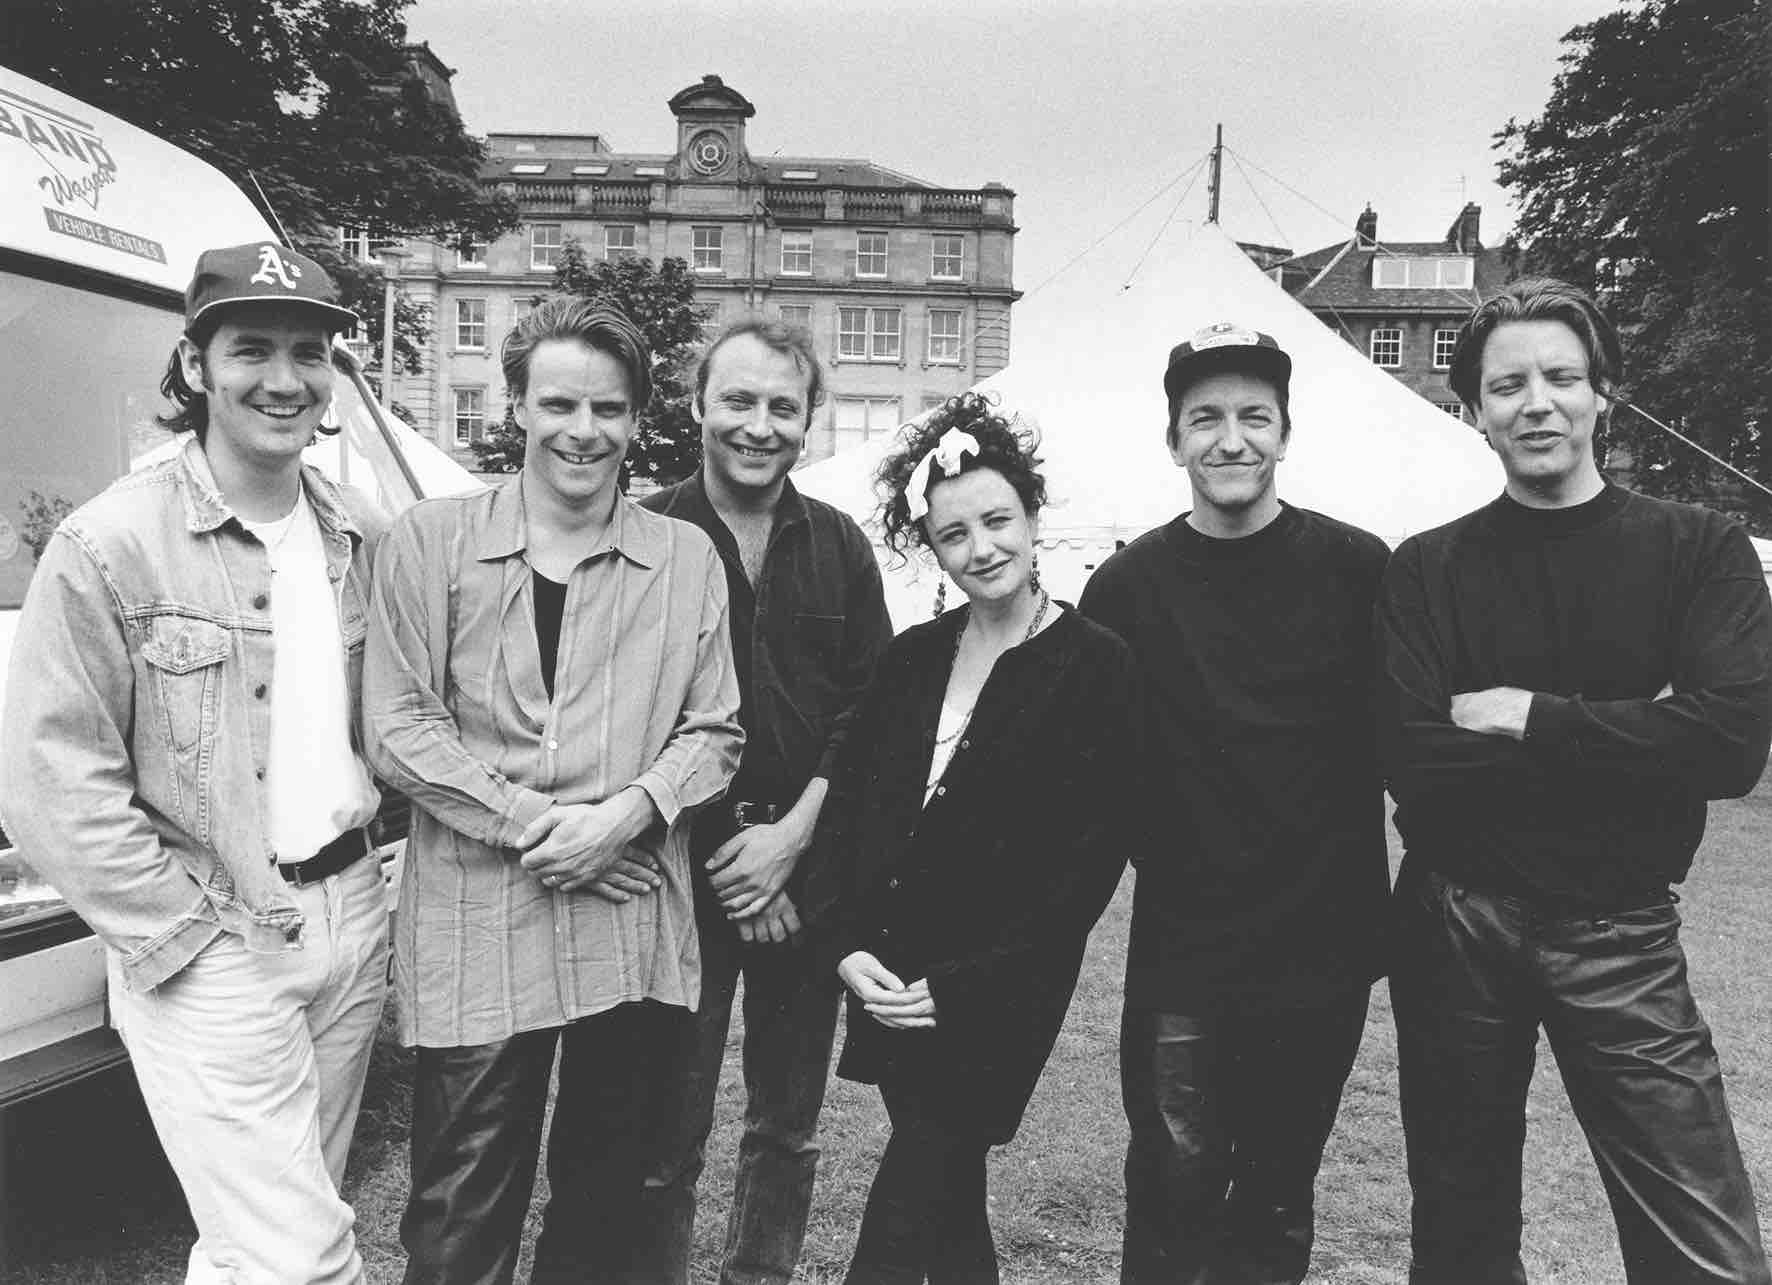 Deacon Blue Band